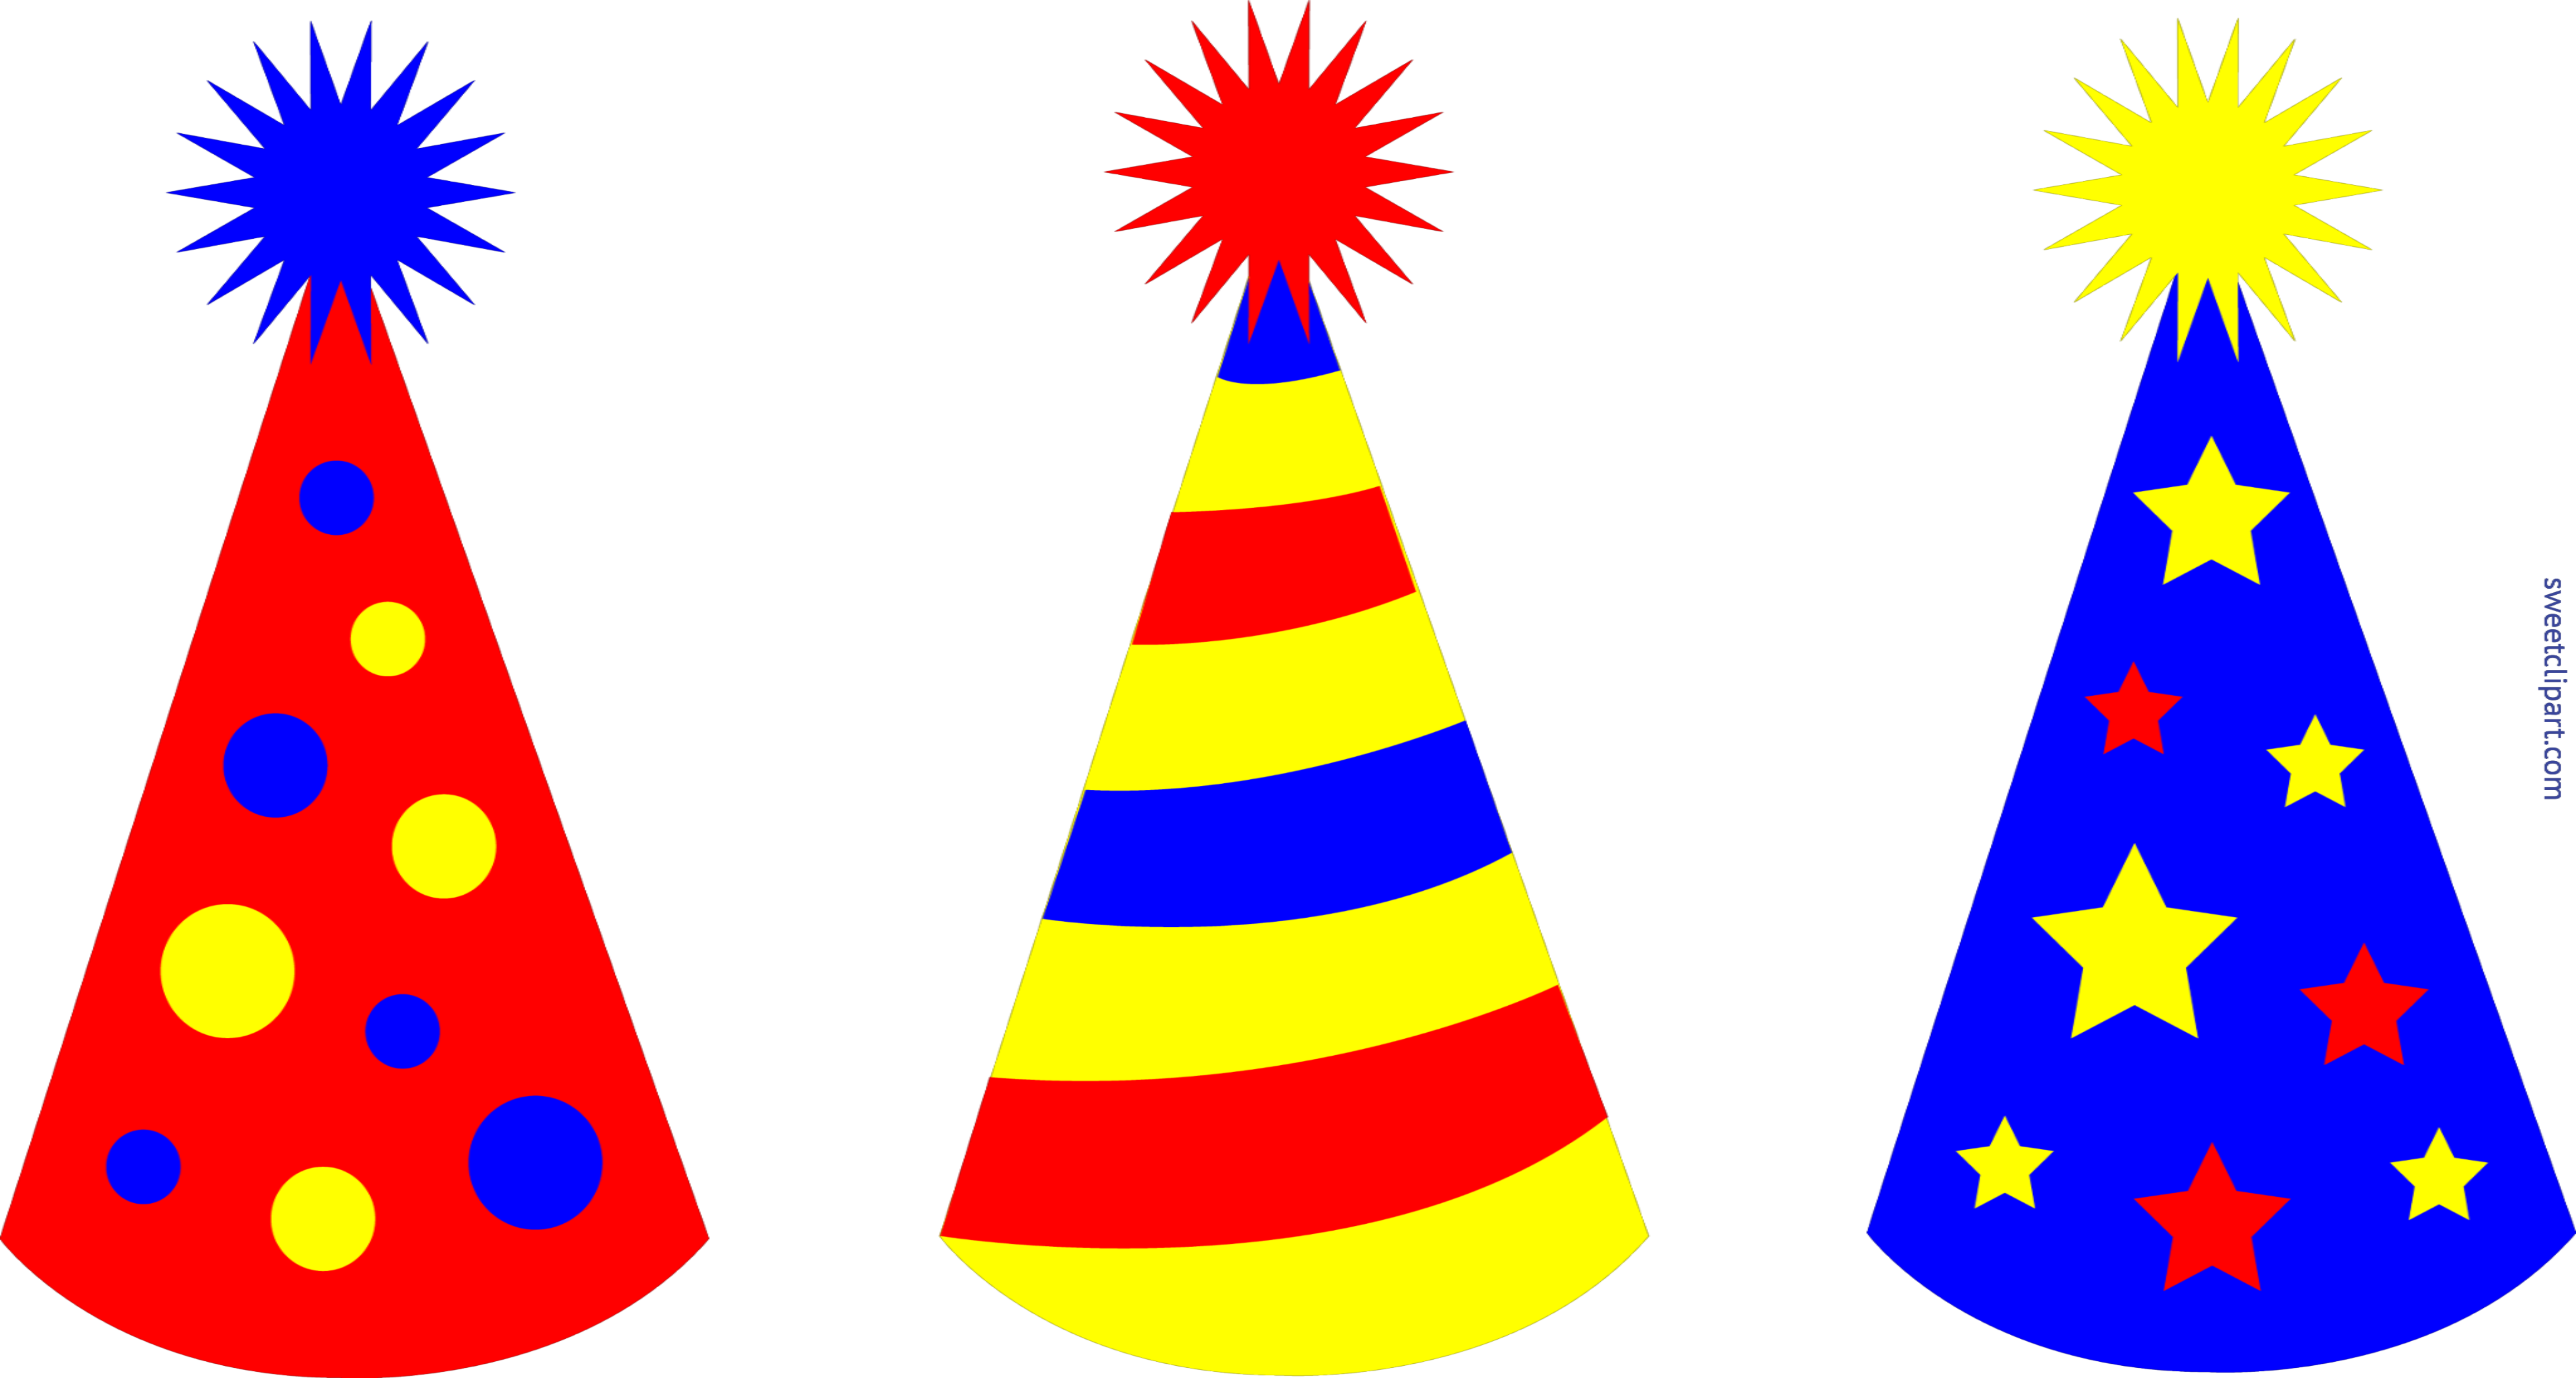 Birthday 2 with boy crown clipart image free stock Birthday Party Hats Set 2 Clip Art - Sweet Clip Art image free stock